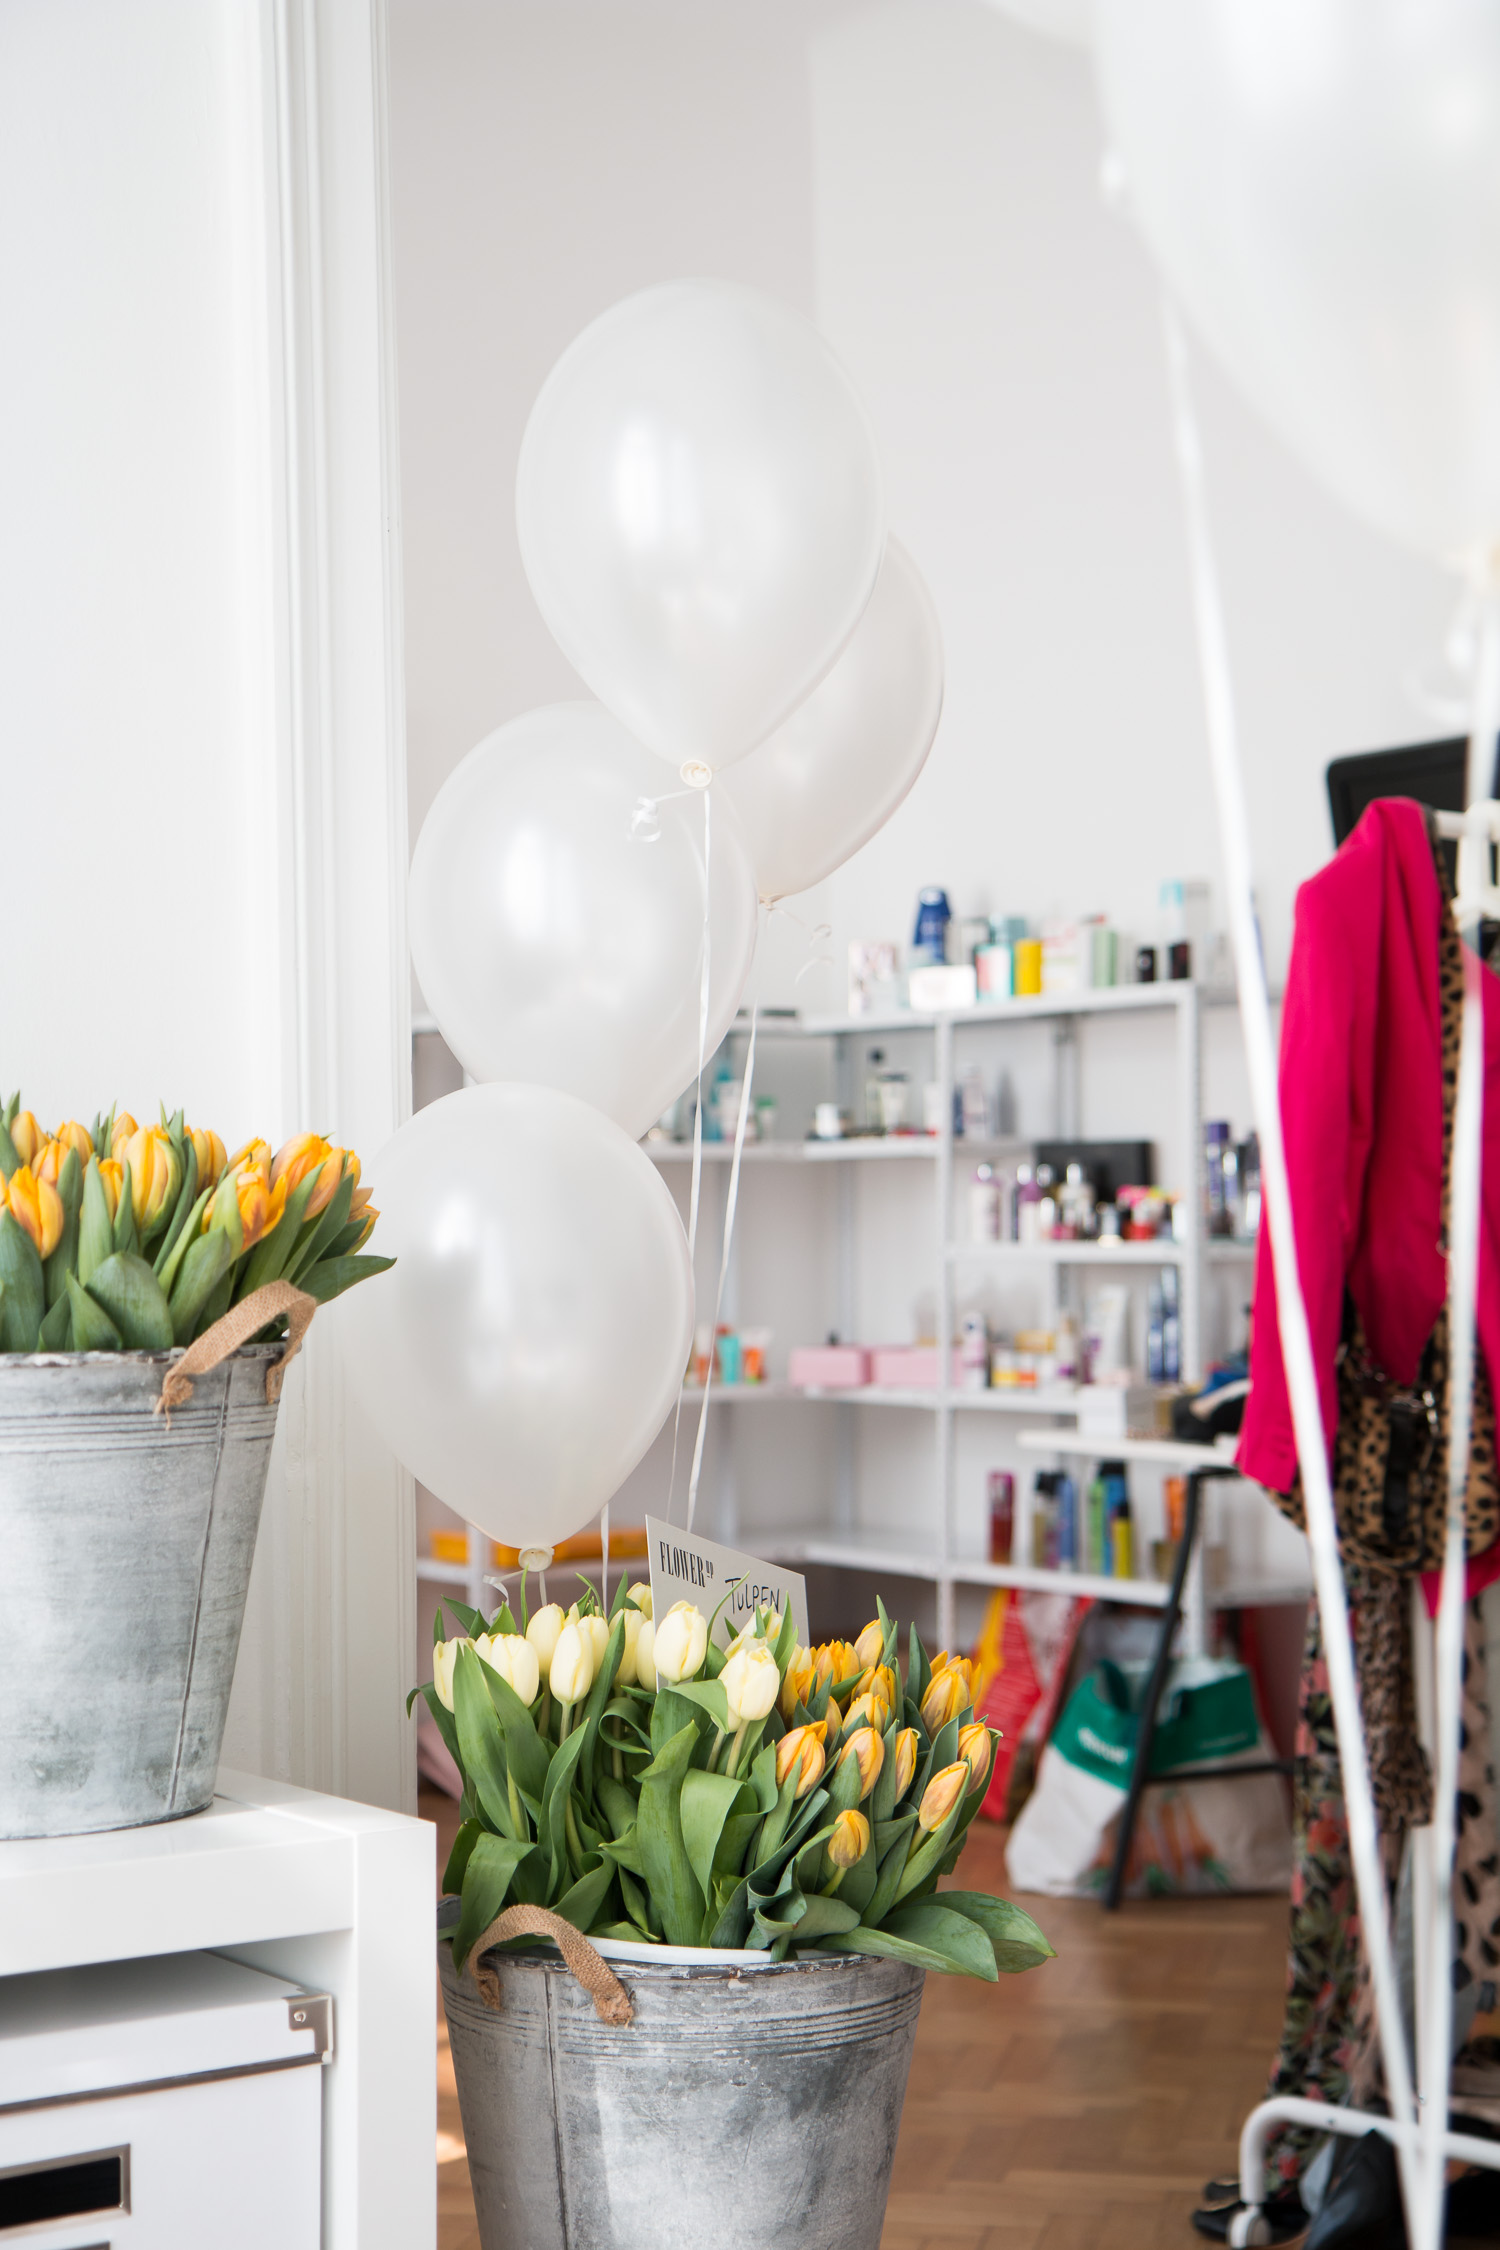 TDD Pop-Up Store | The Daily Dose